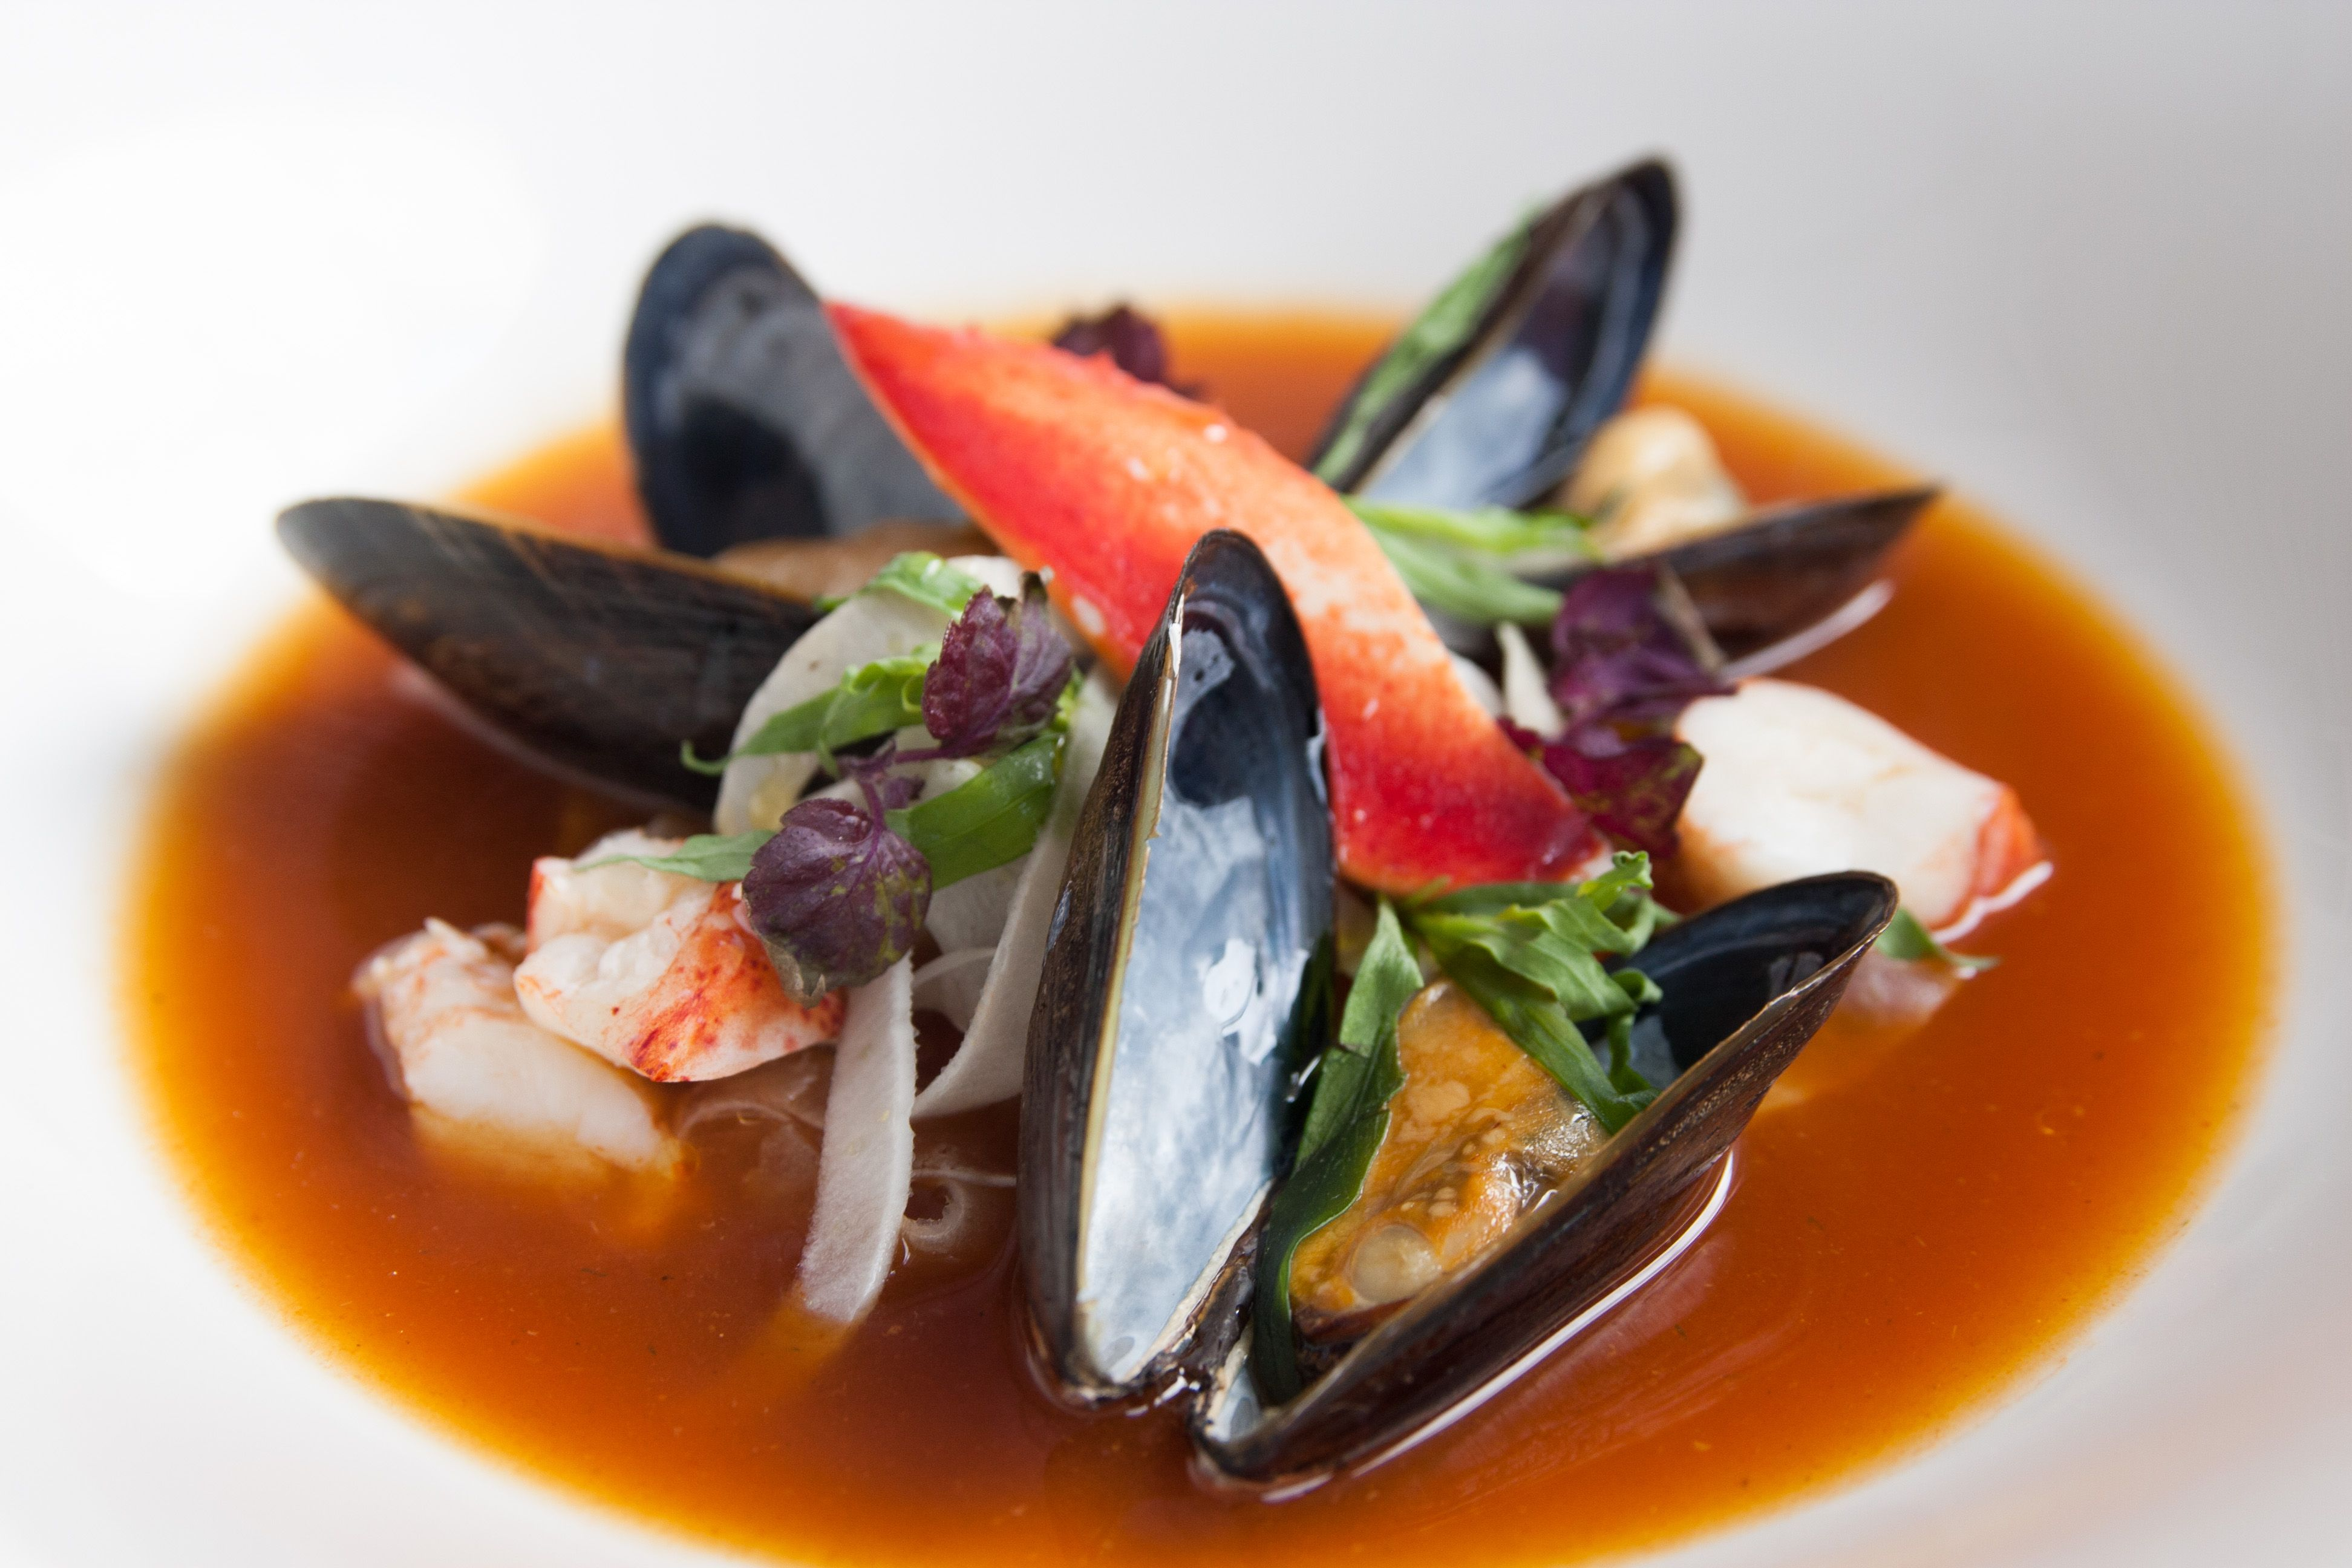 Red Hot Tub (Chef's signature dish) Lobster broth